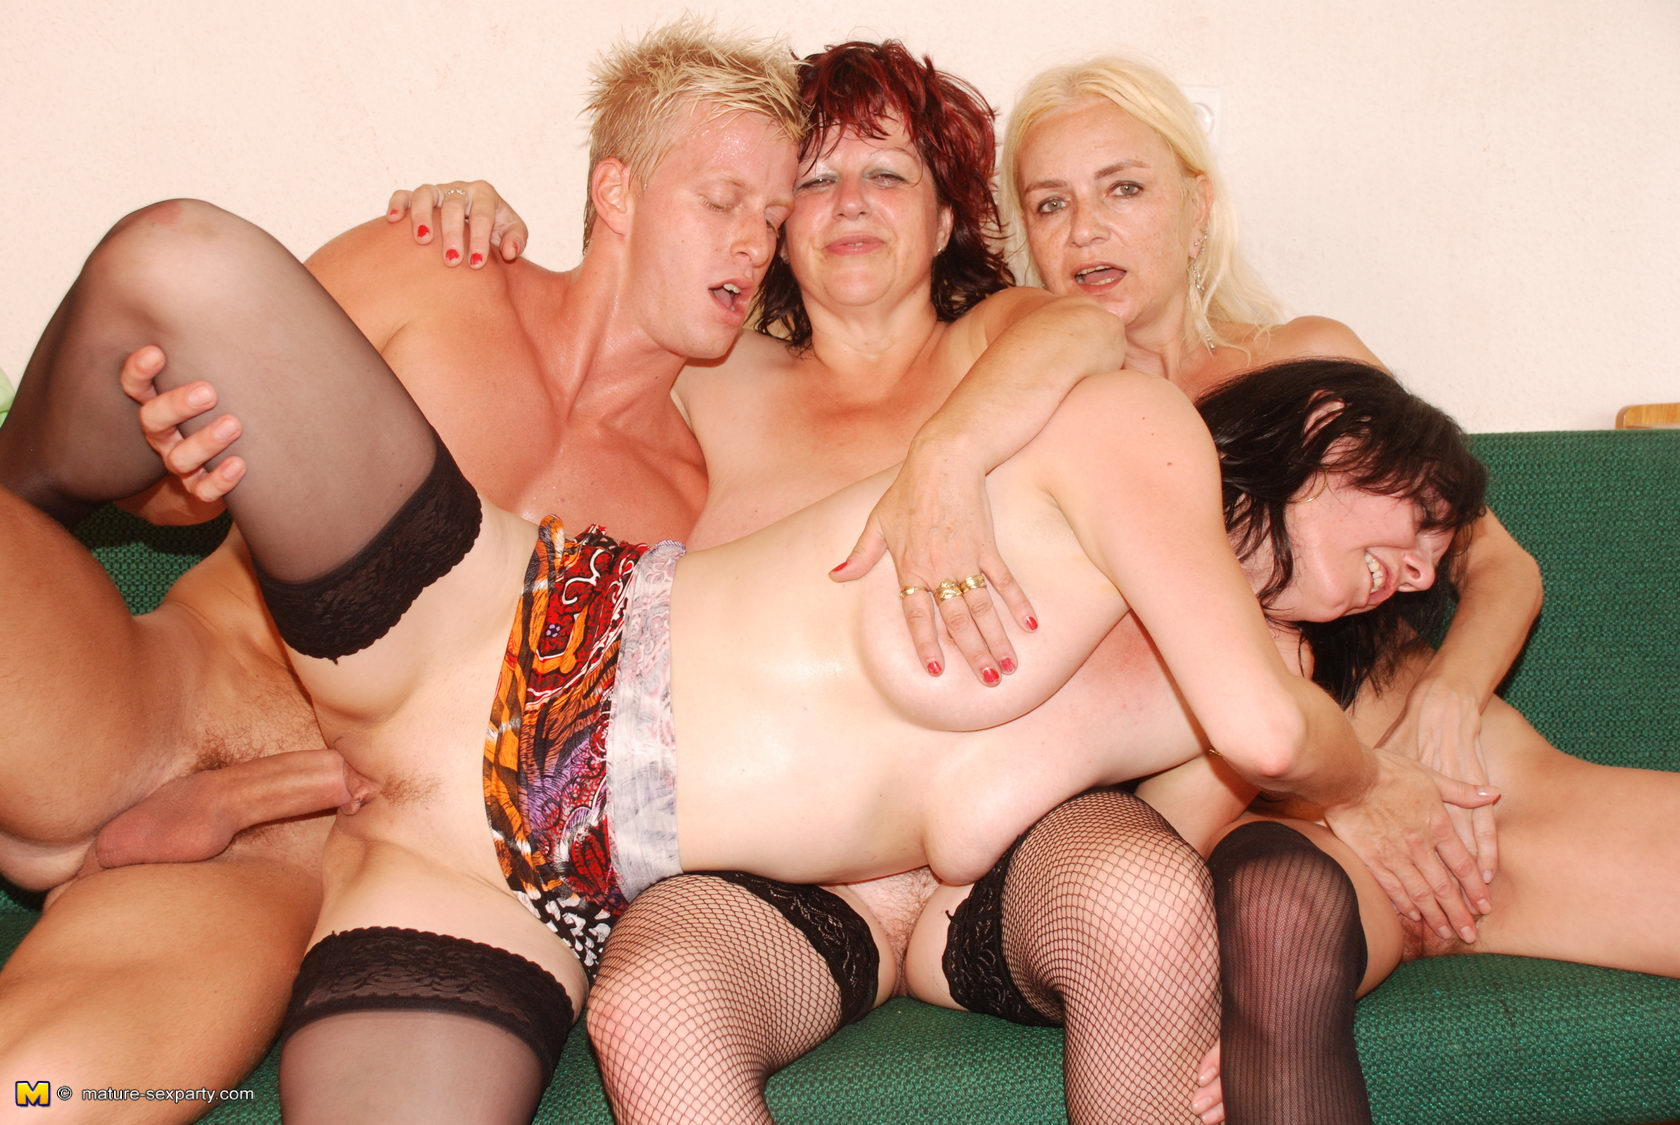 That granny orgy hot nic